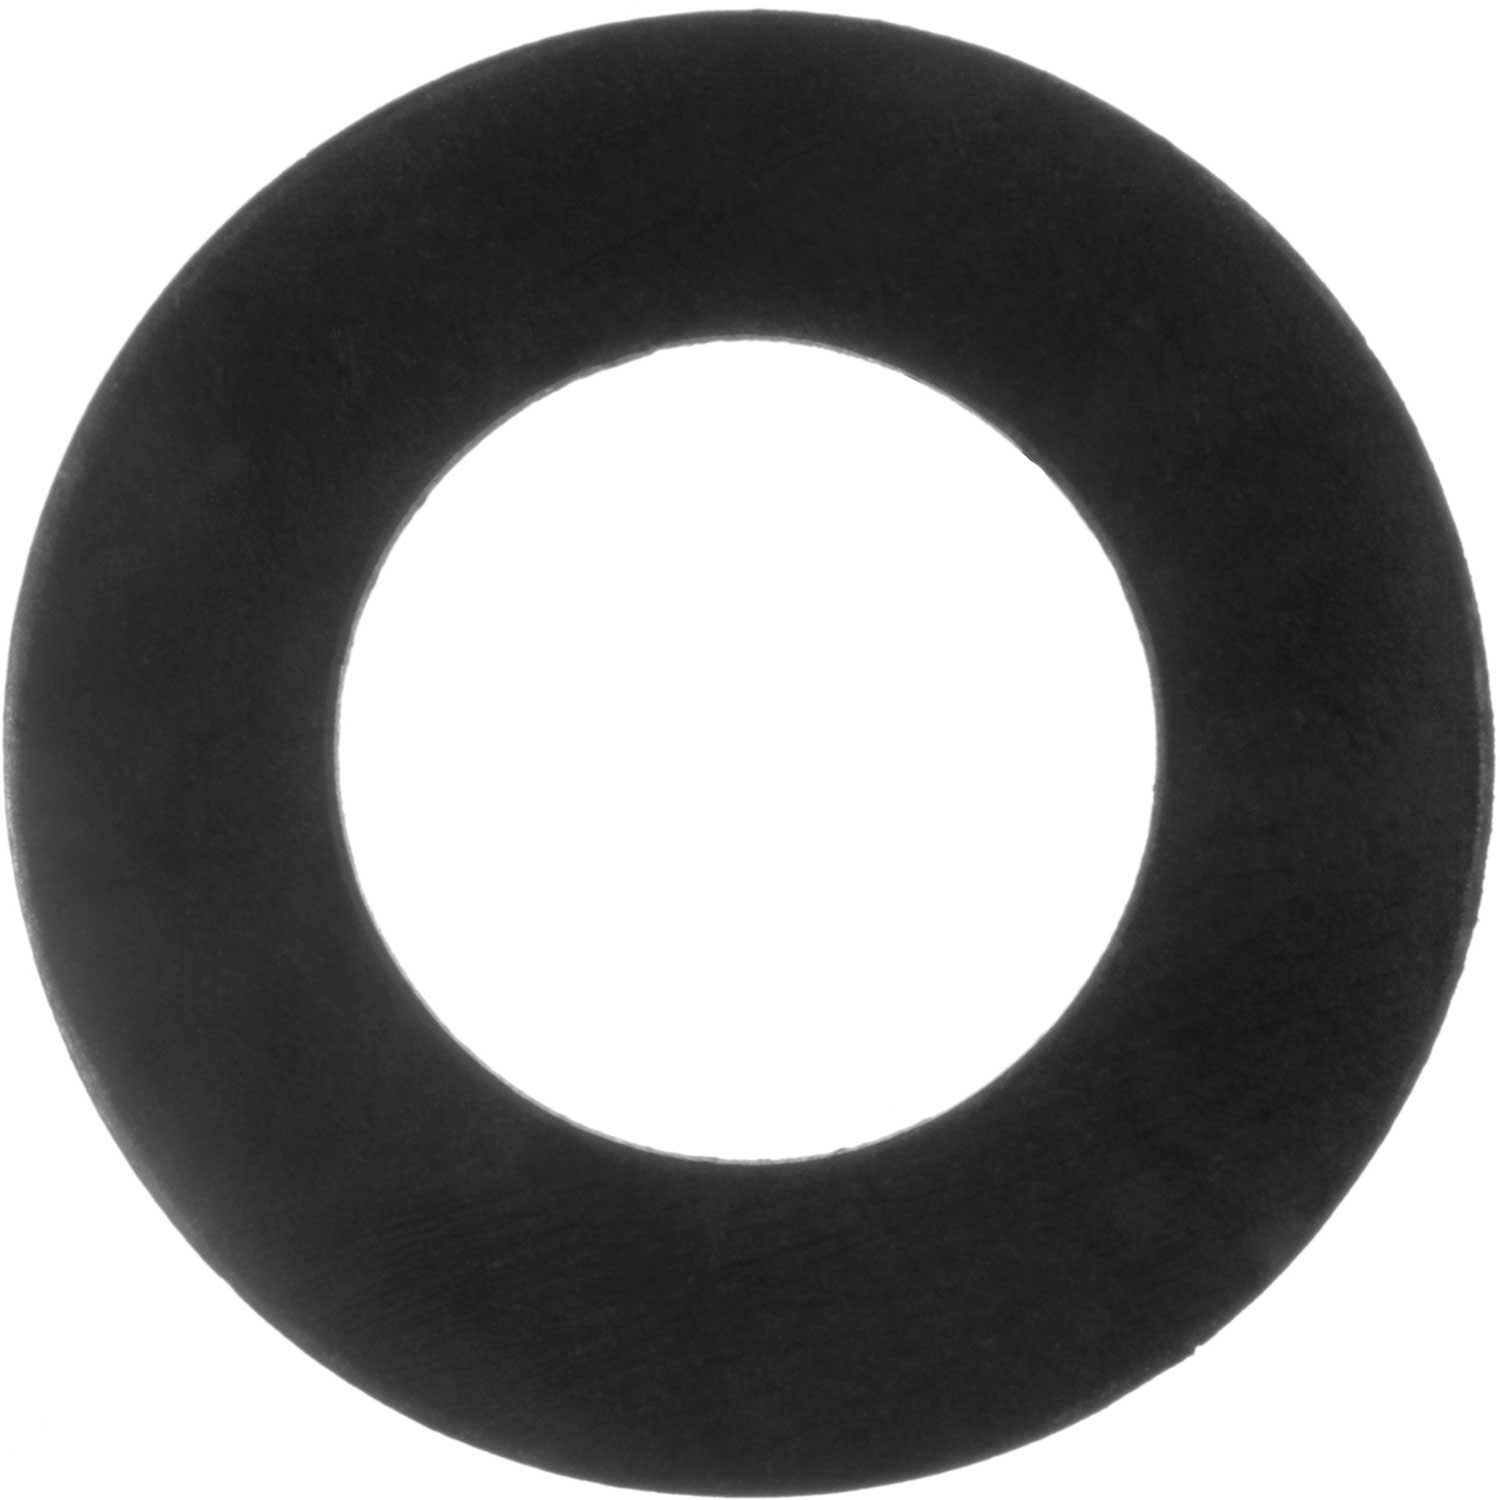 O-Rings, Gaskets & Dynamic Seals | Flange Gaskets | Ring